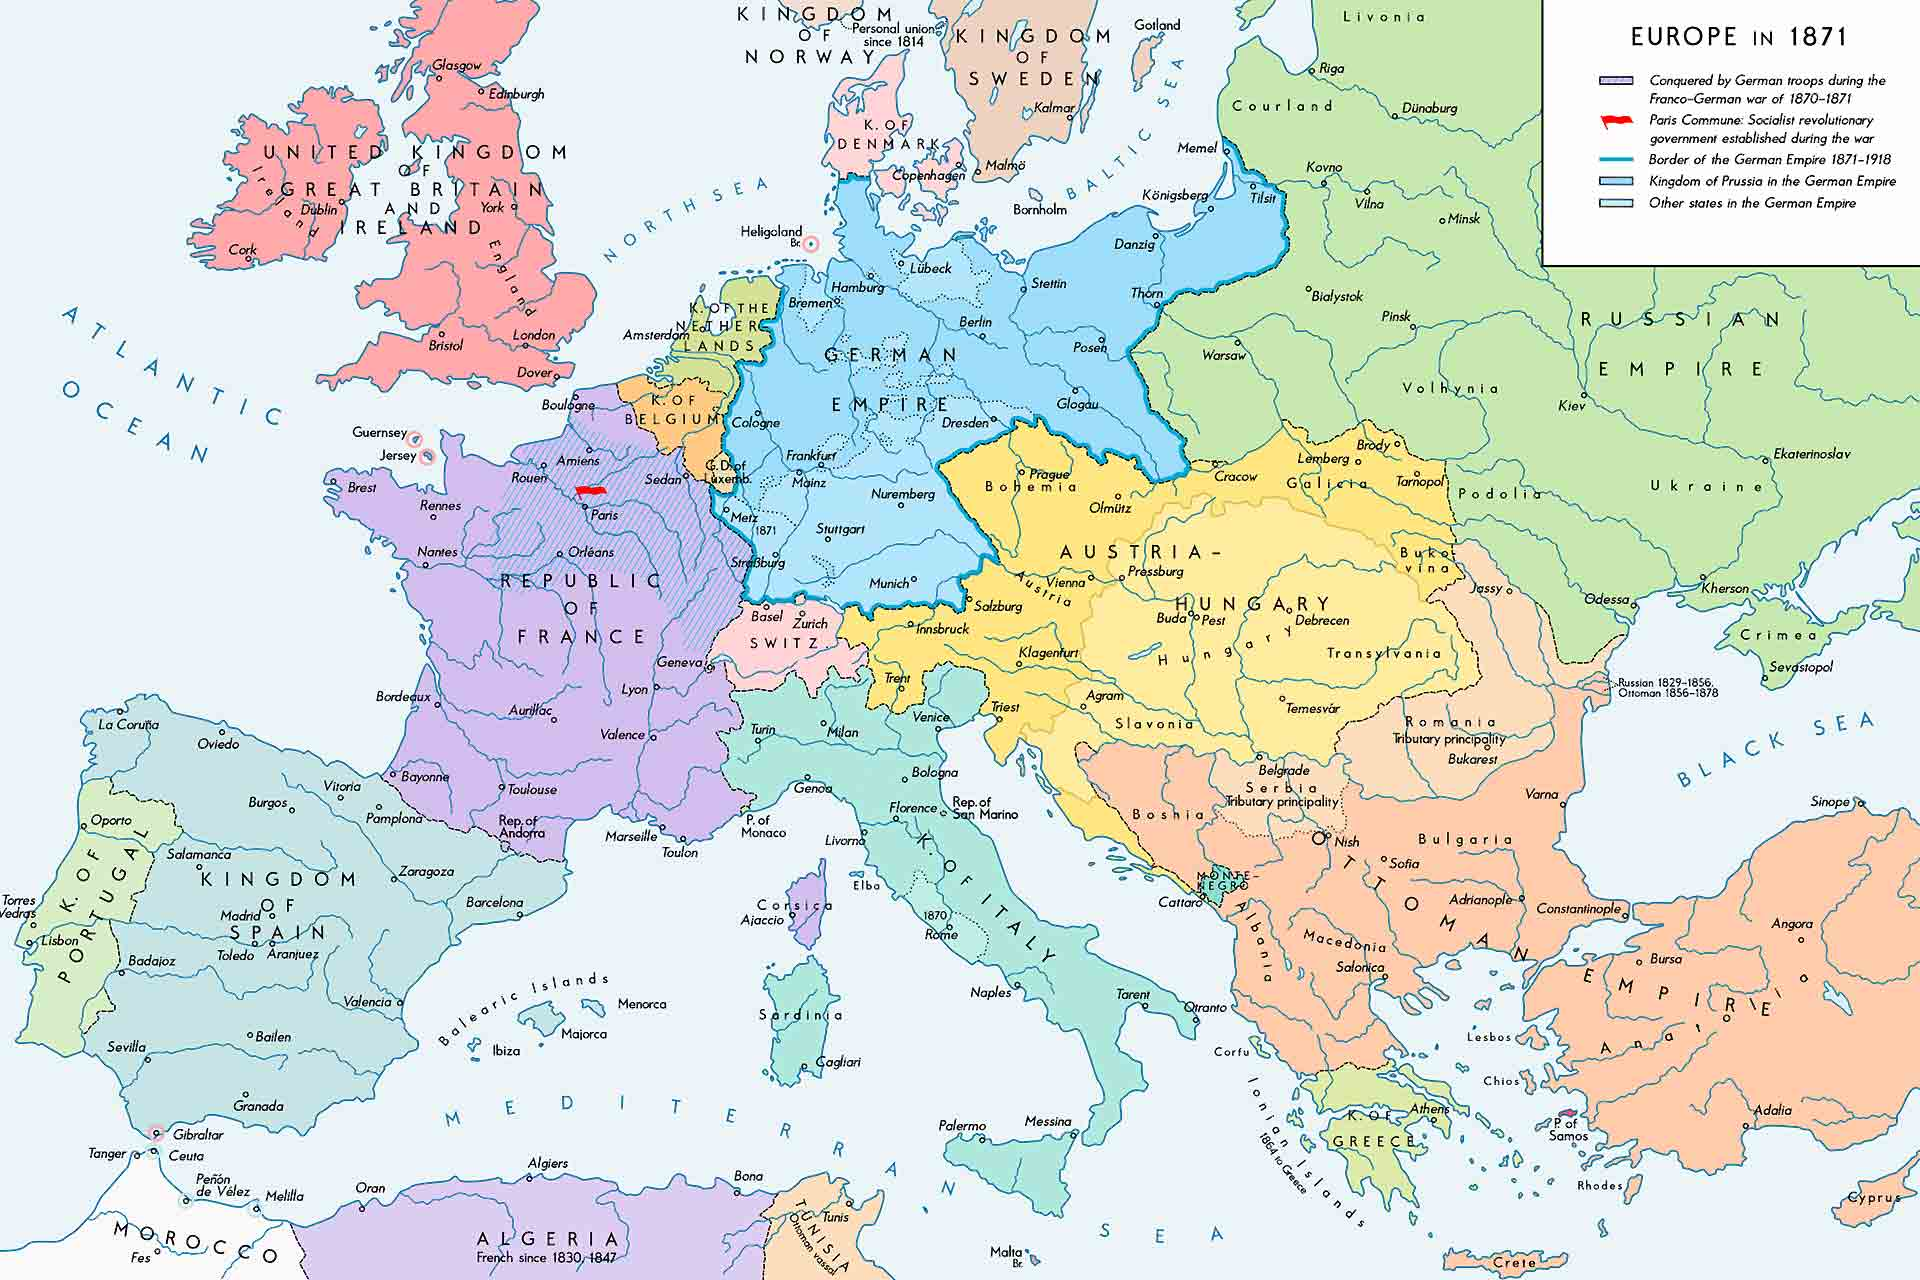 A map of Europe in 1871.